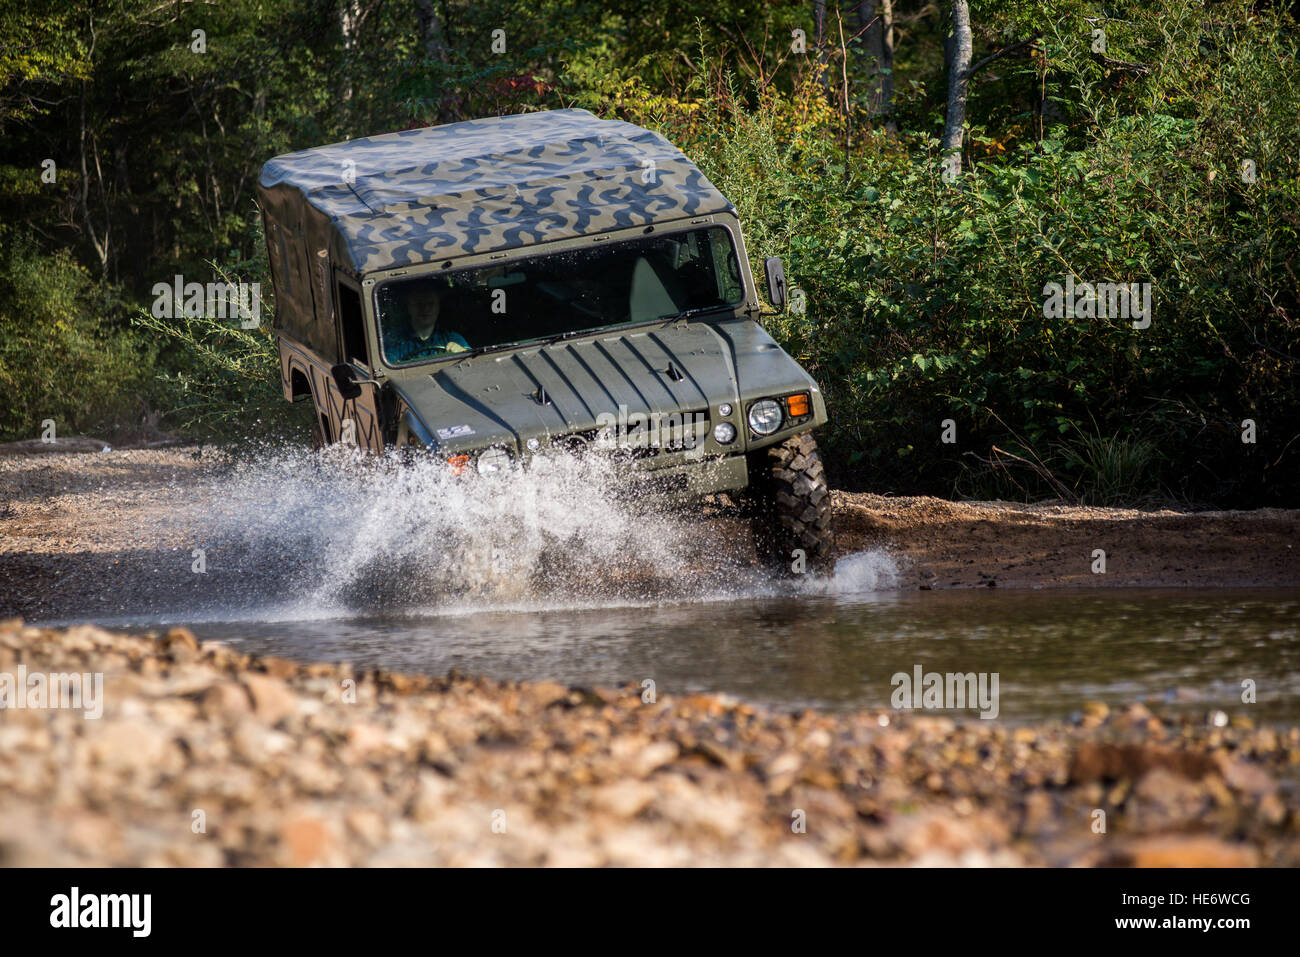 Suv Motor Car Toyota Mega Cruiser Driving On A Forest Stock Photo